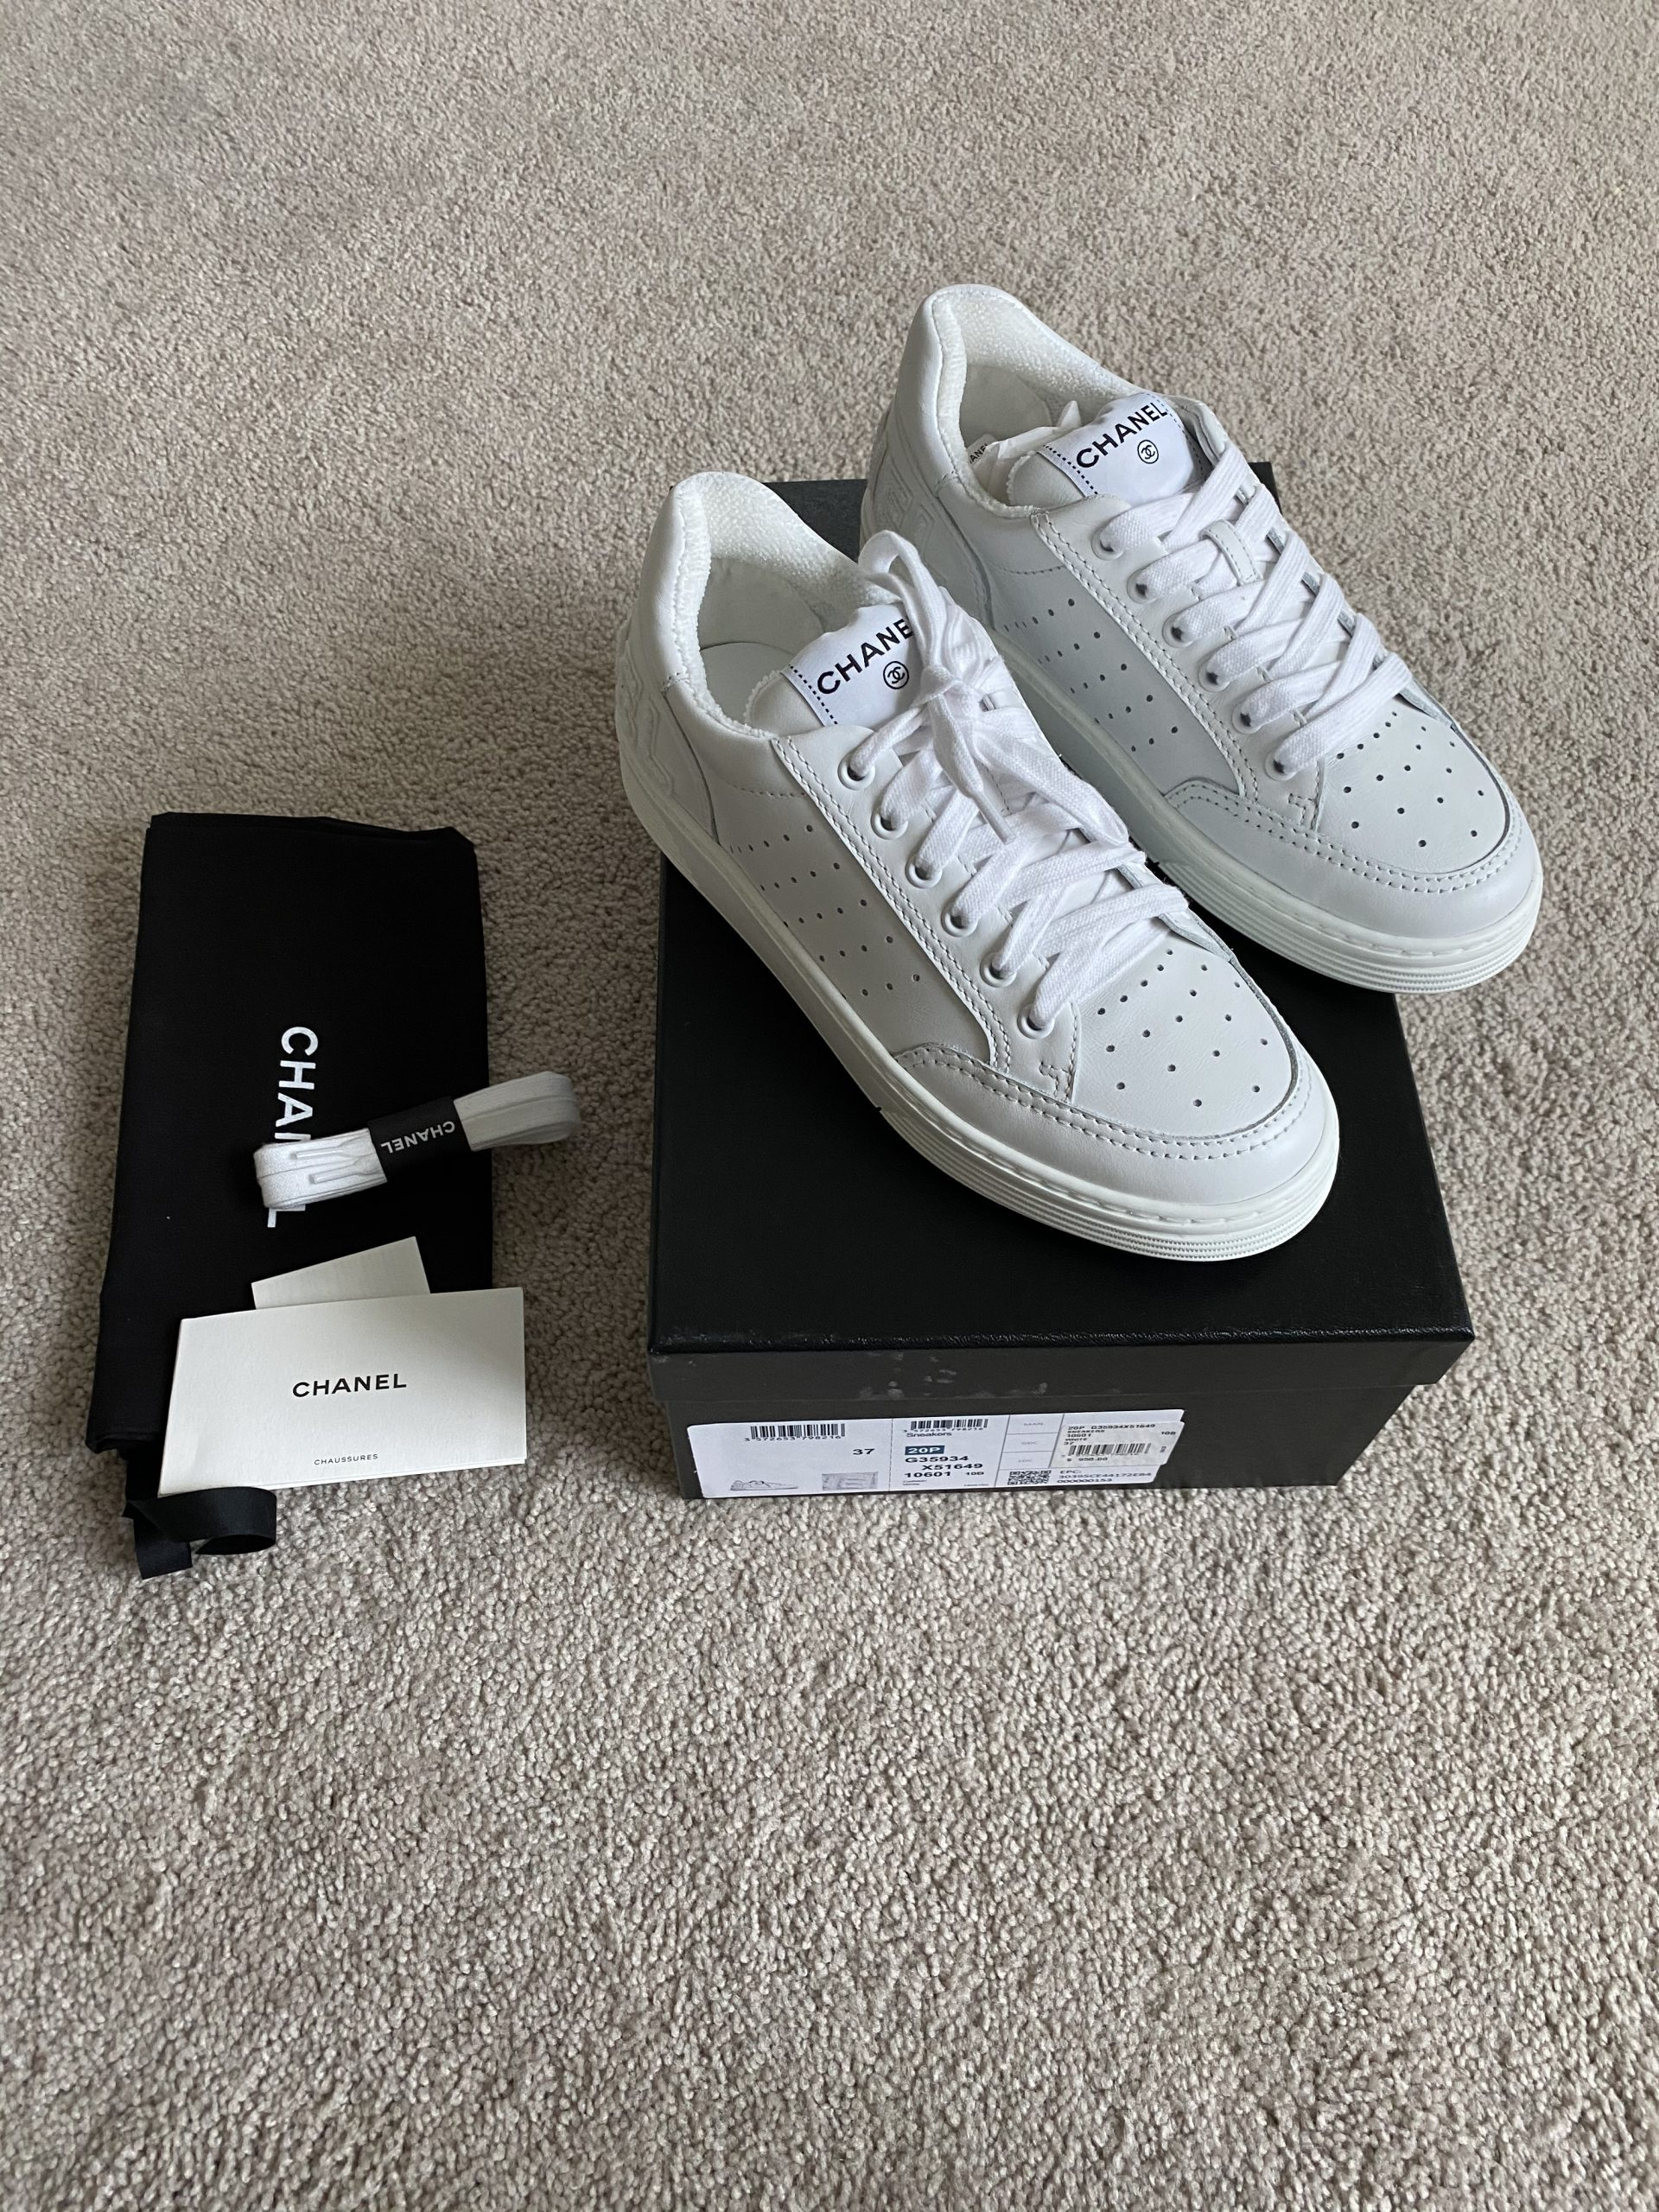 Chanel Low Top All White Joggers - Reetzy